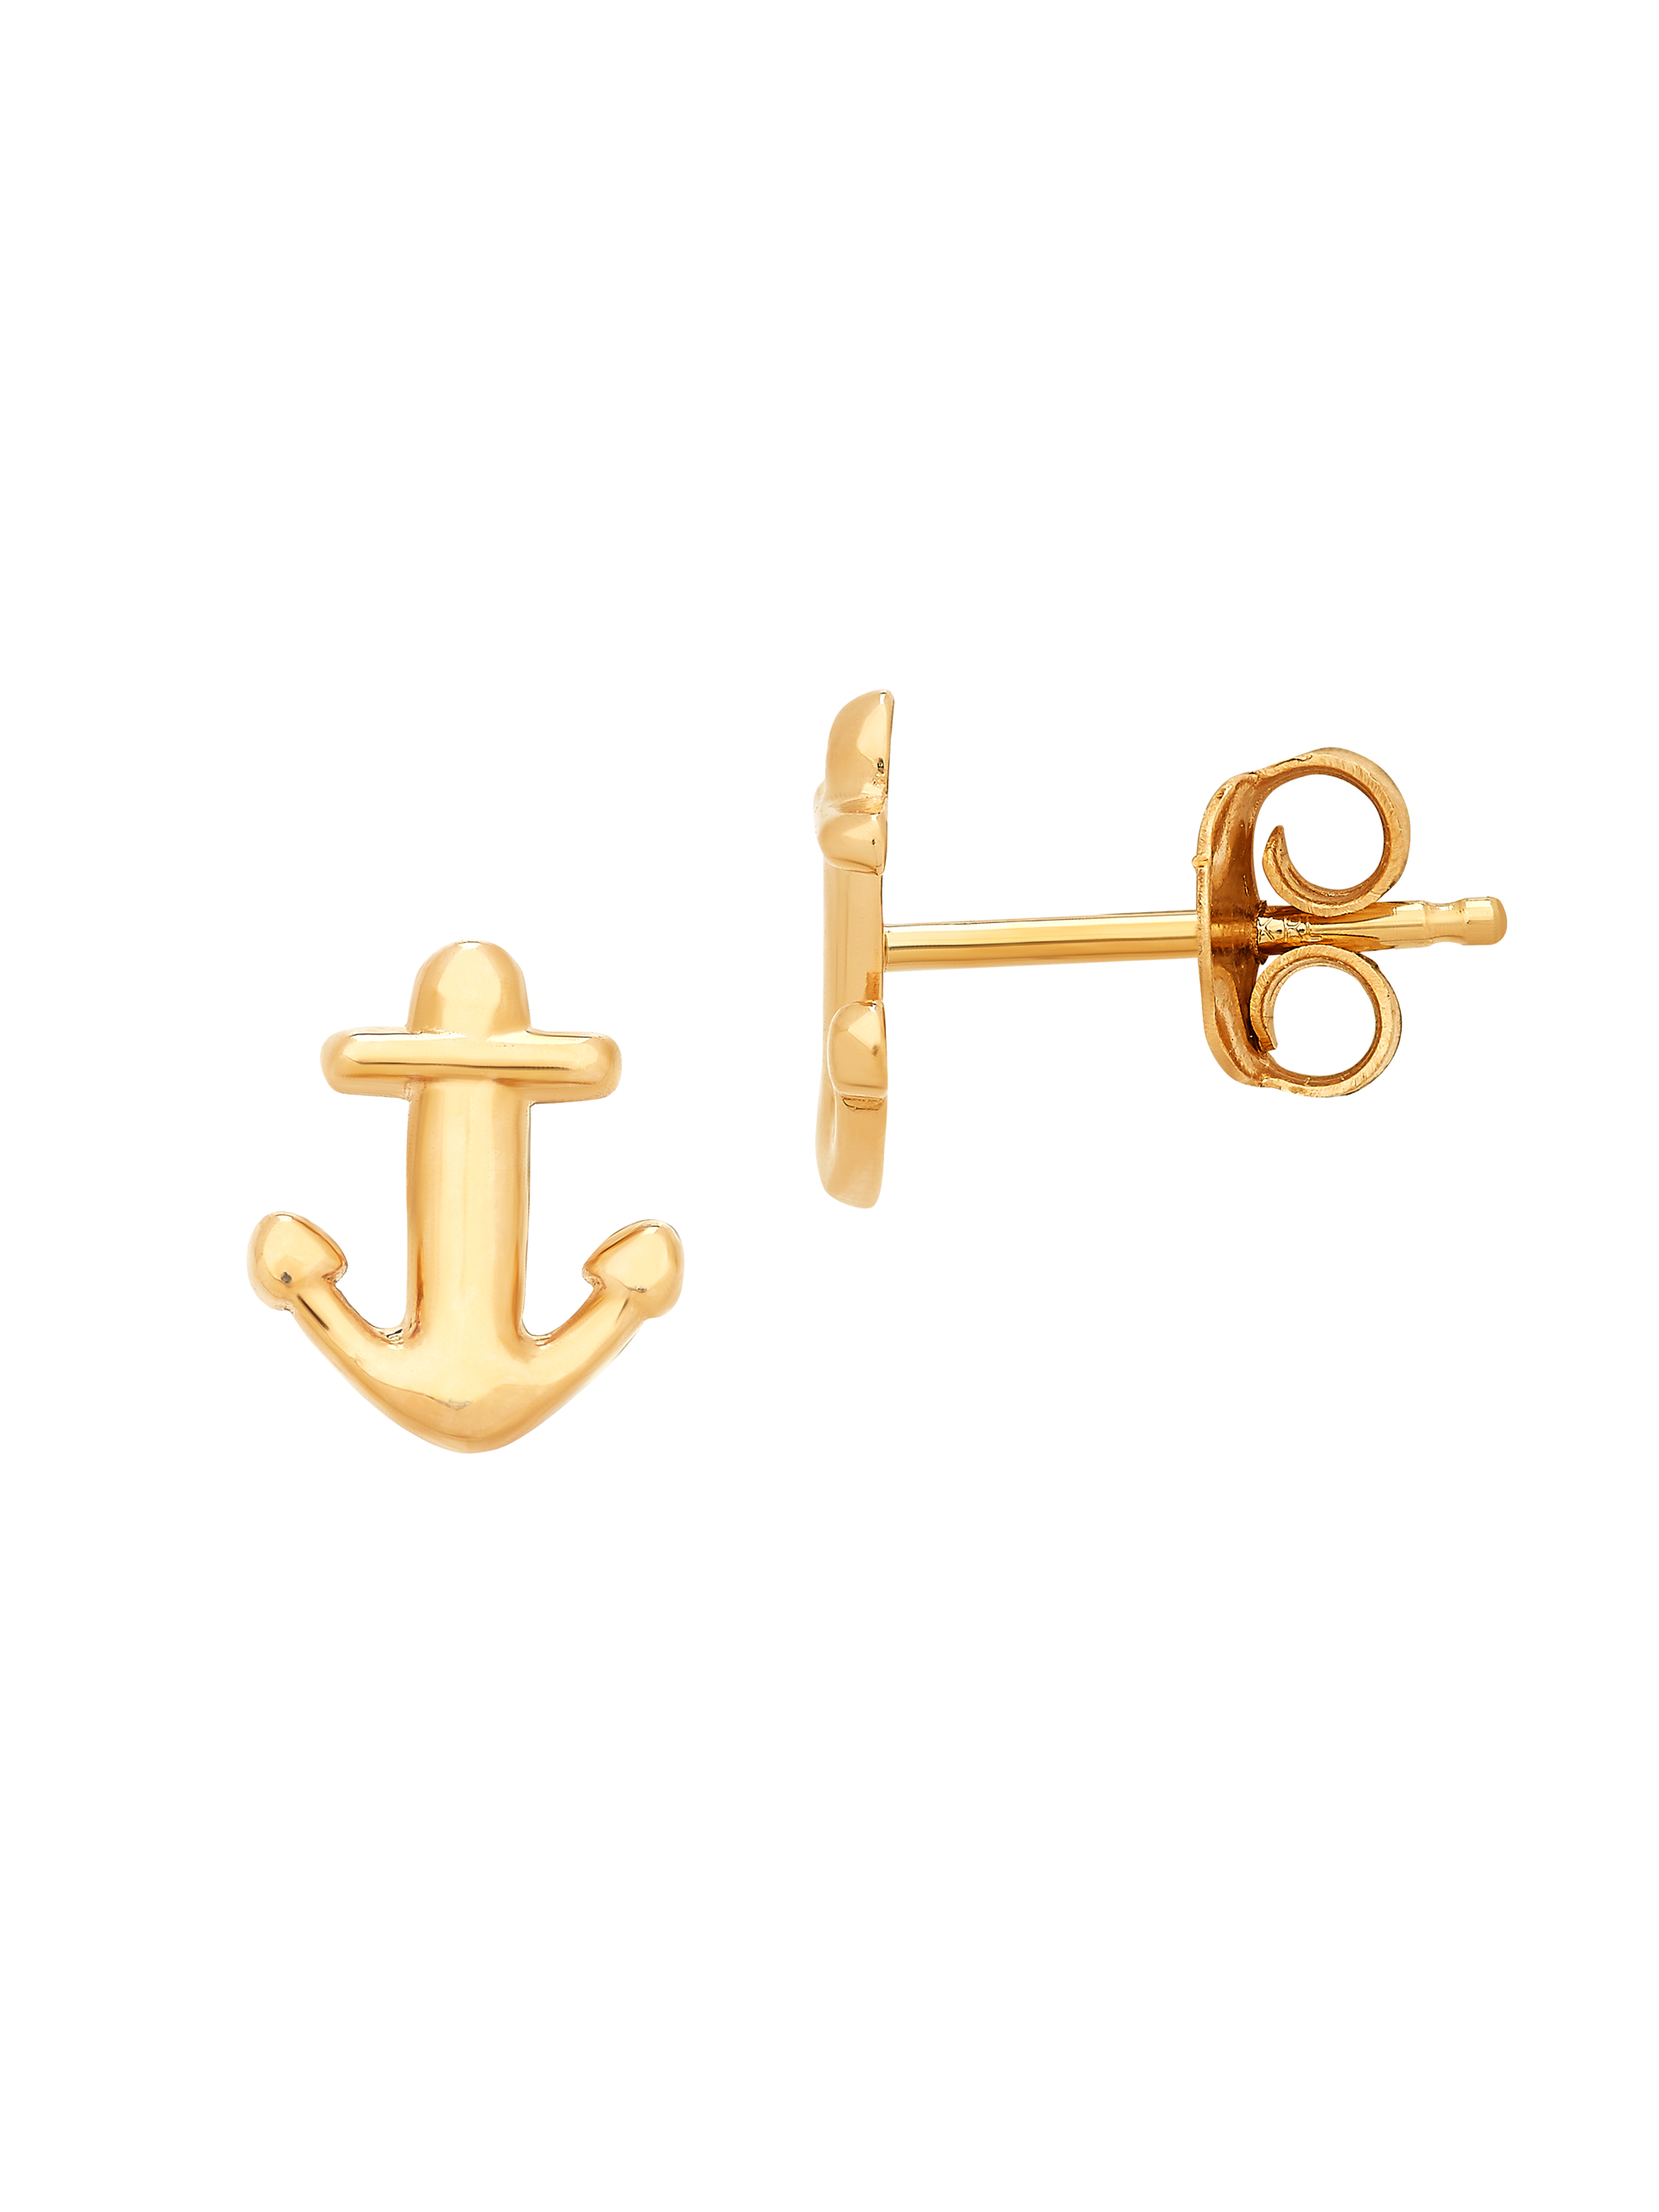 Gold anchor studs are simple and chic, and are basically a must have for anyone who loves a nautical vibe.